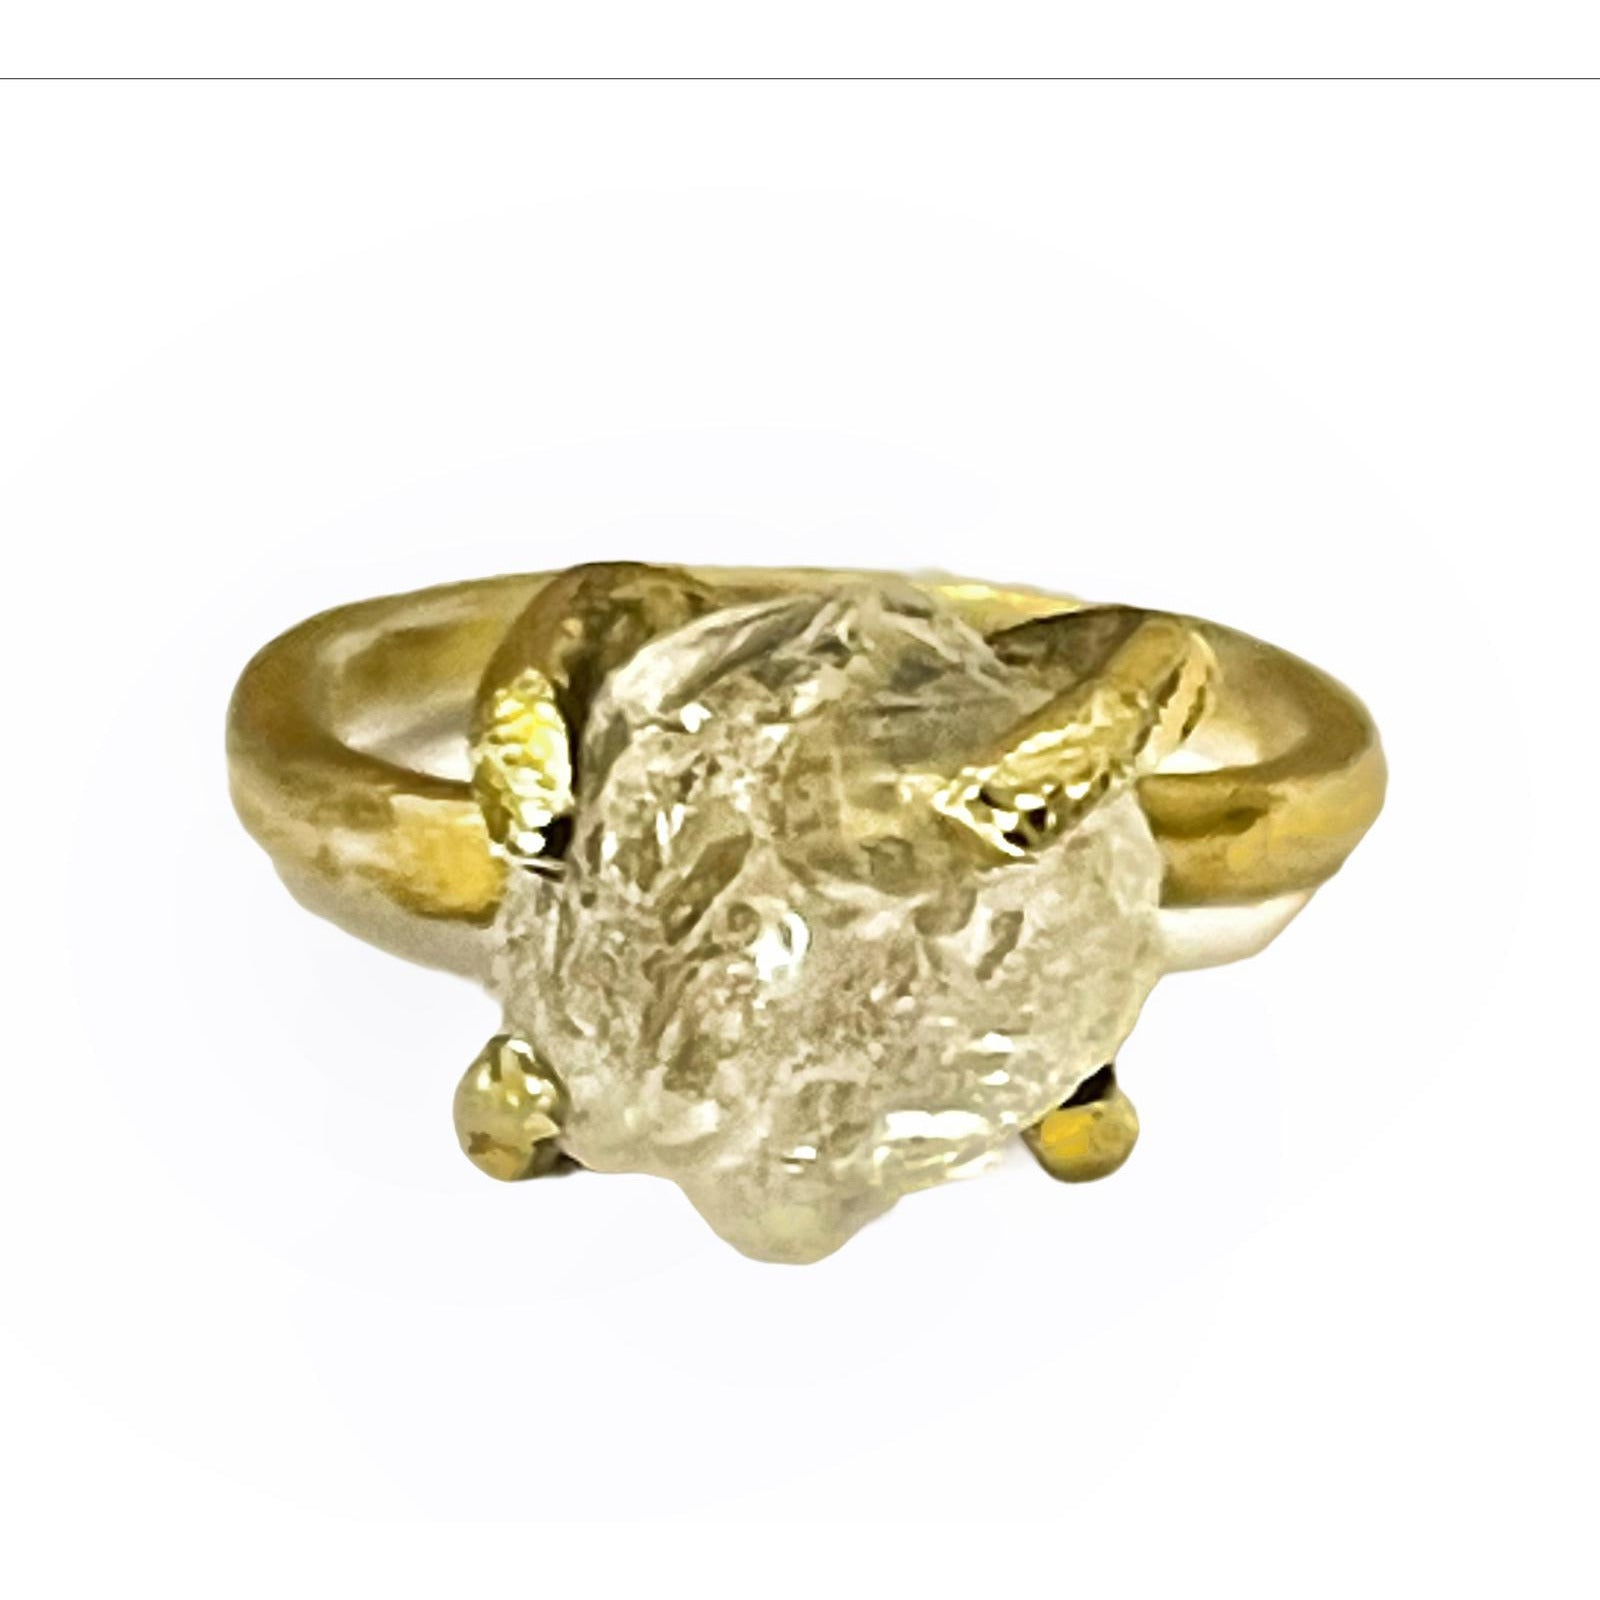 White Quartz Raw Rough Ring 24 K Gold Plating over Silver, Made to order - 10 days lead time - natoorio